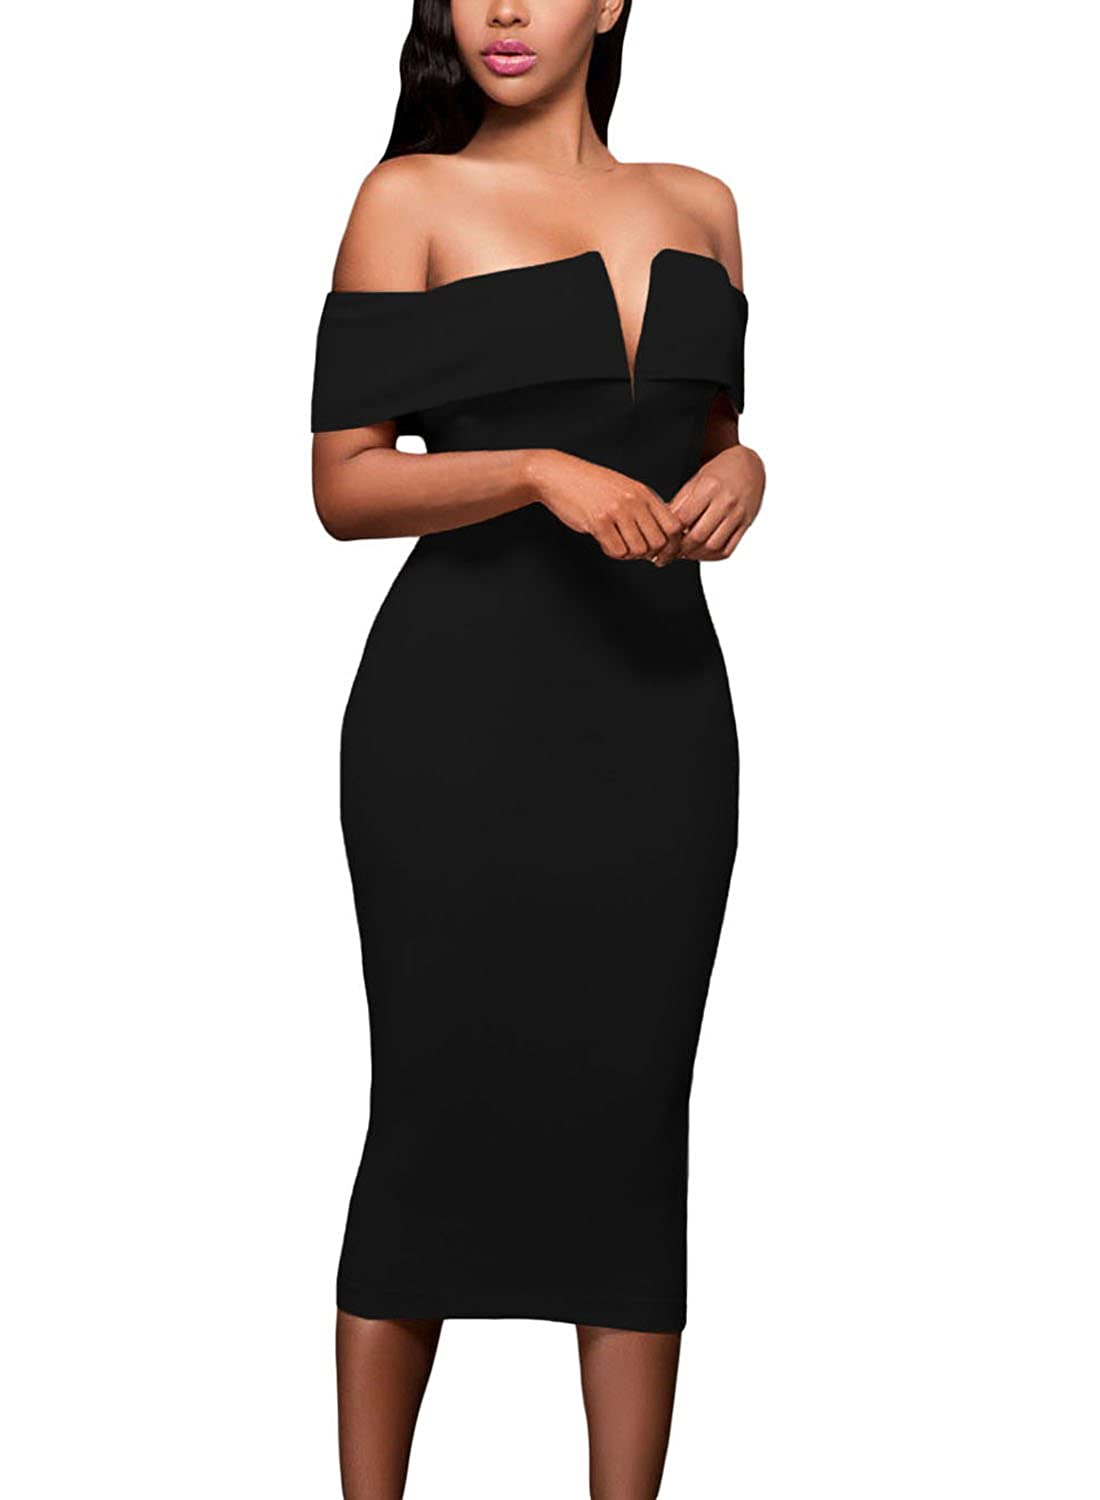 58974e0ac6e ZKESS Women s Off The Shoulder One Sleeve Slit Maxi Party Prom Dress at  Amazon Women s Clothing store